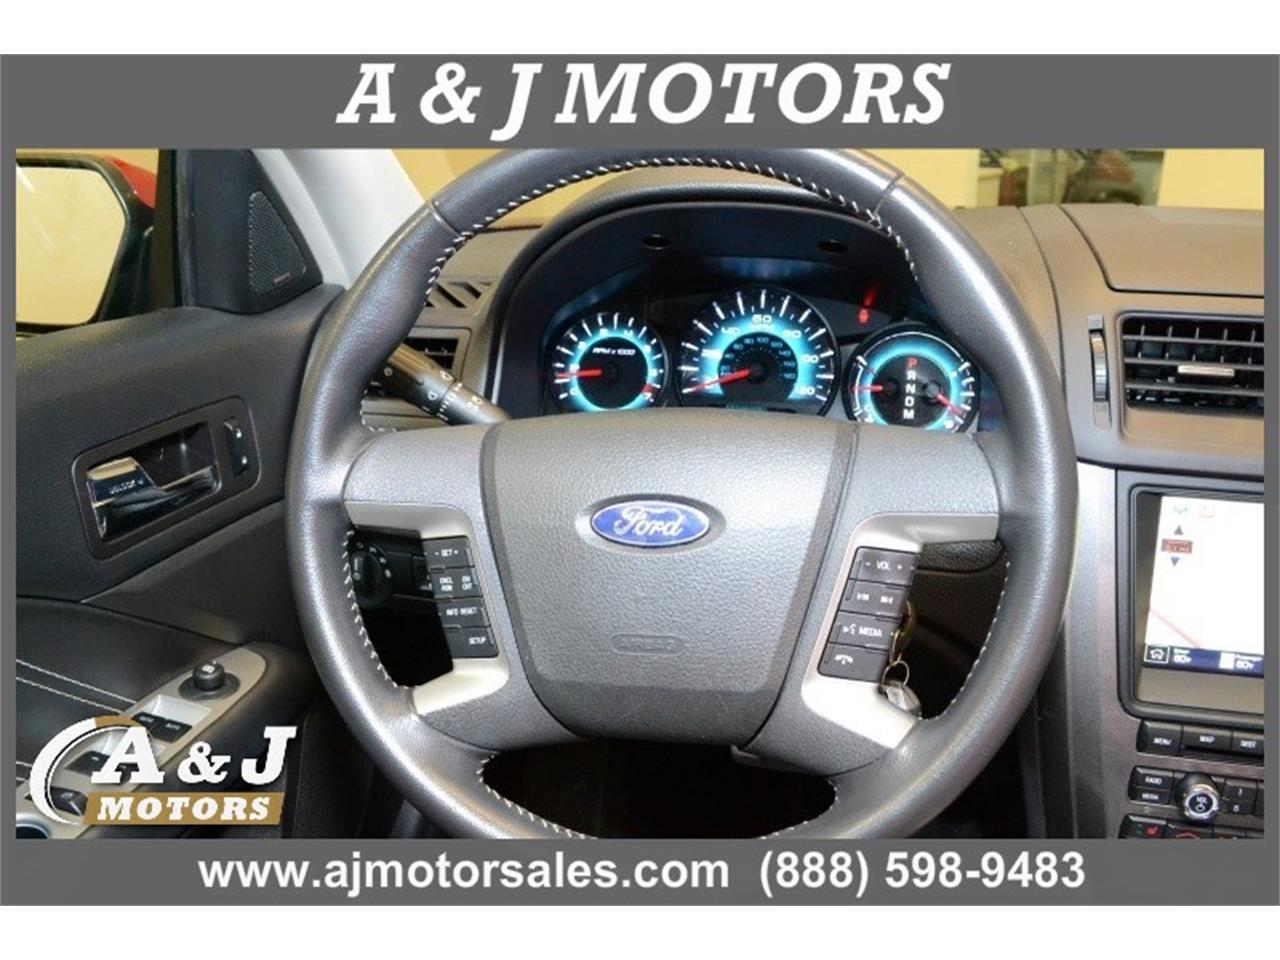 Large Picture of 2012 Ford Fusion located in Marshfield Missouri - $12,999.00 Offered by A & J Motors - MOD0